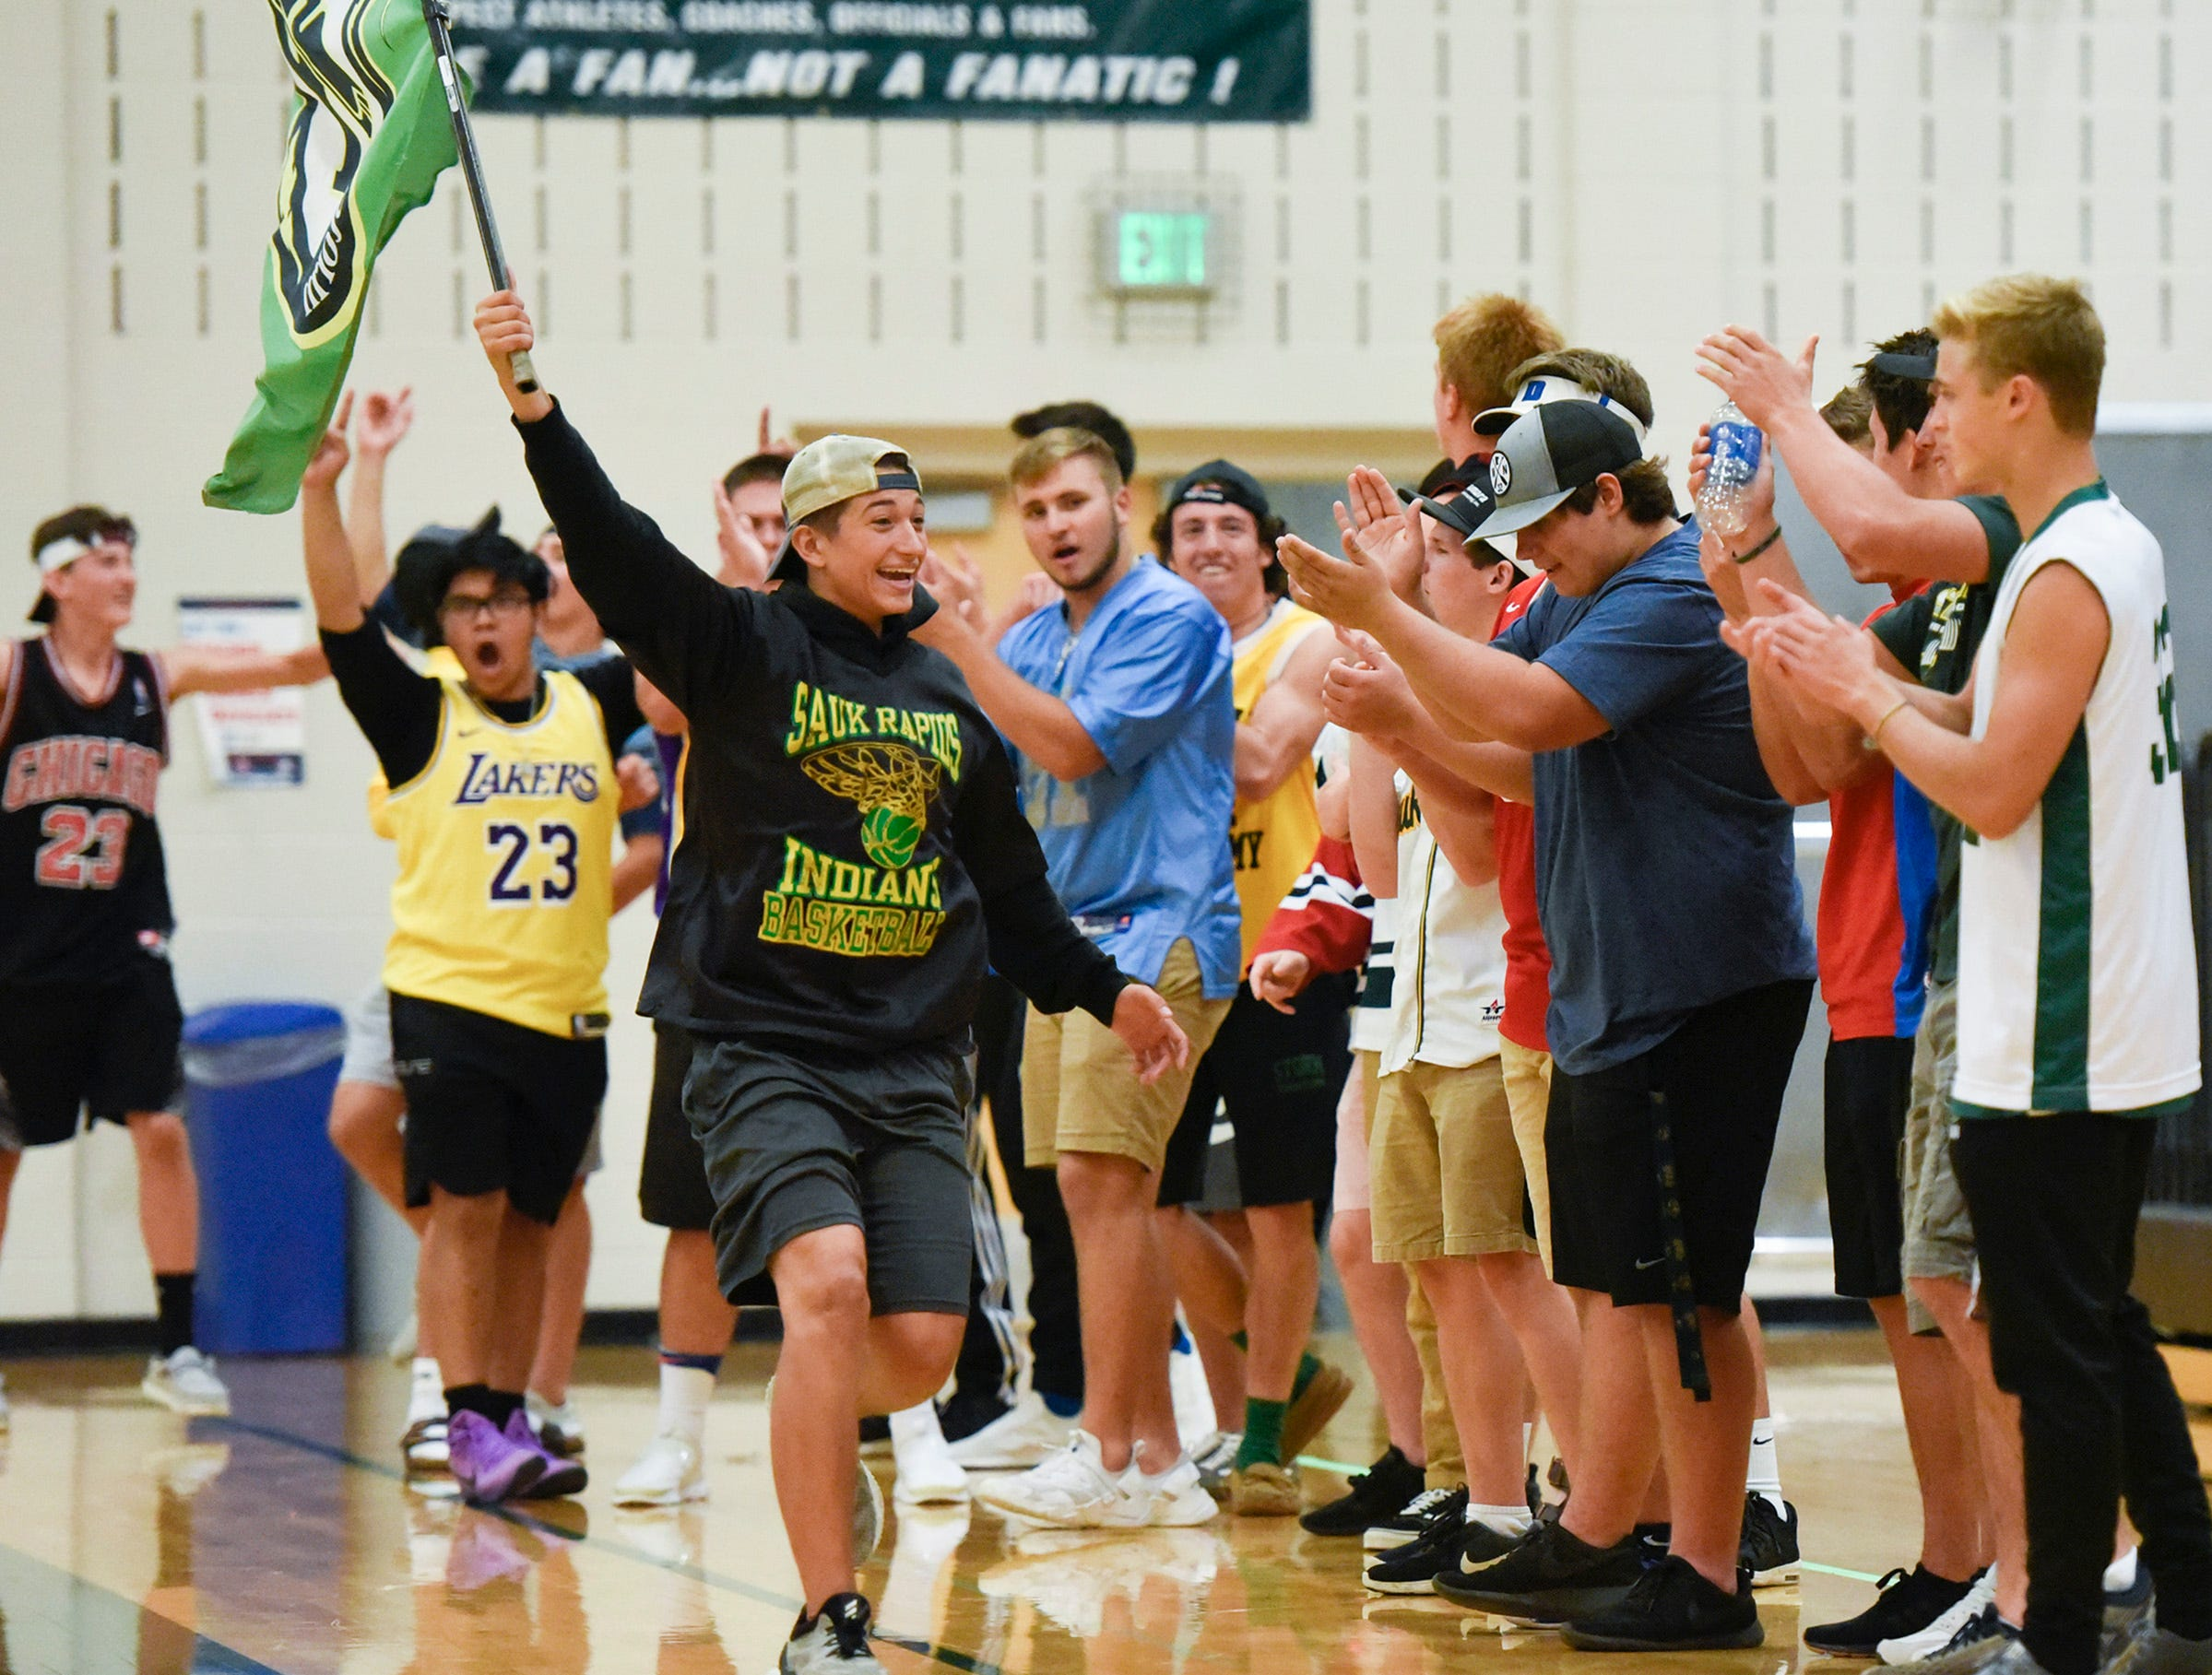 Sauk Rapids' fans celebrate a point against Sartell.